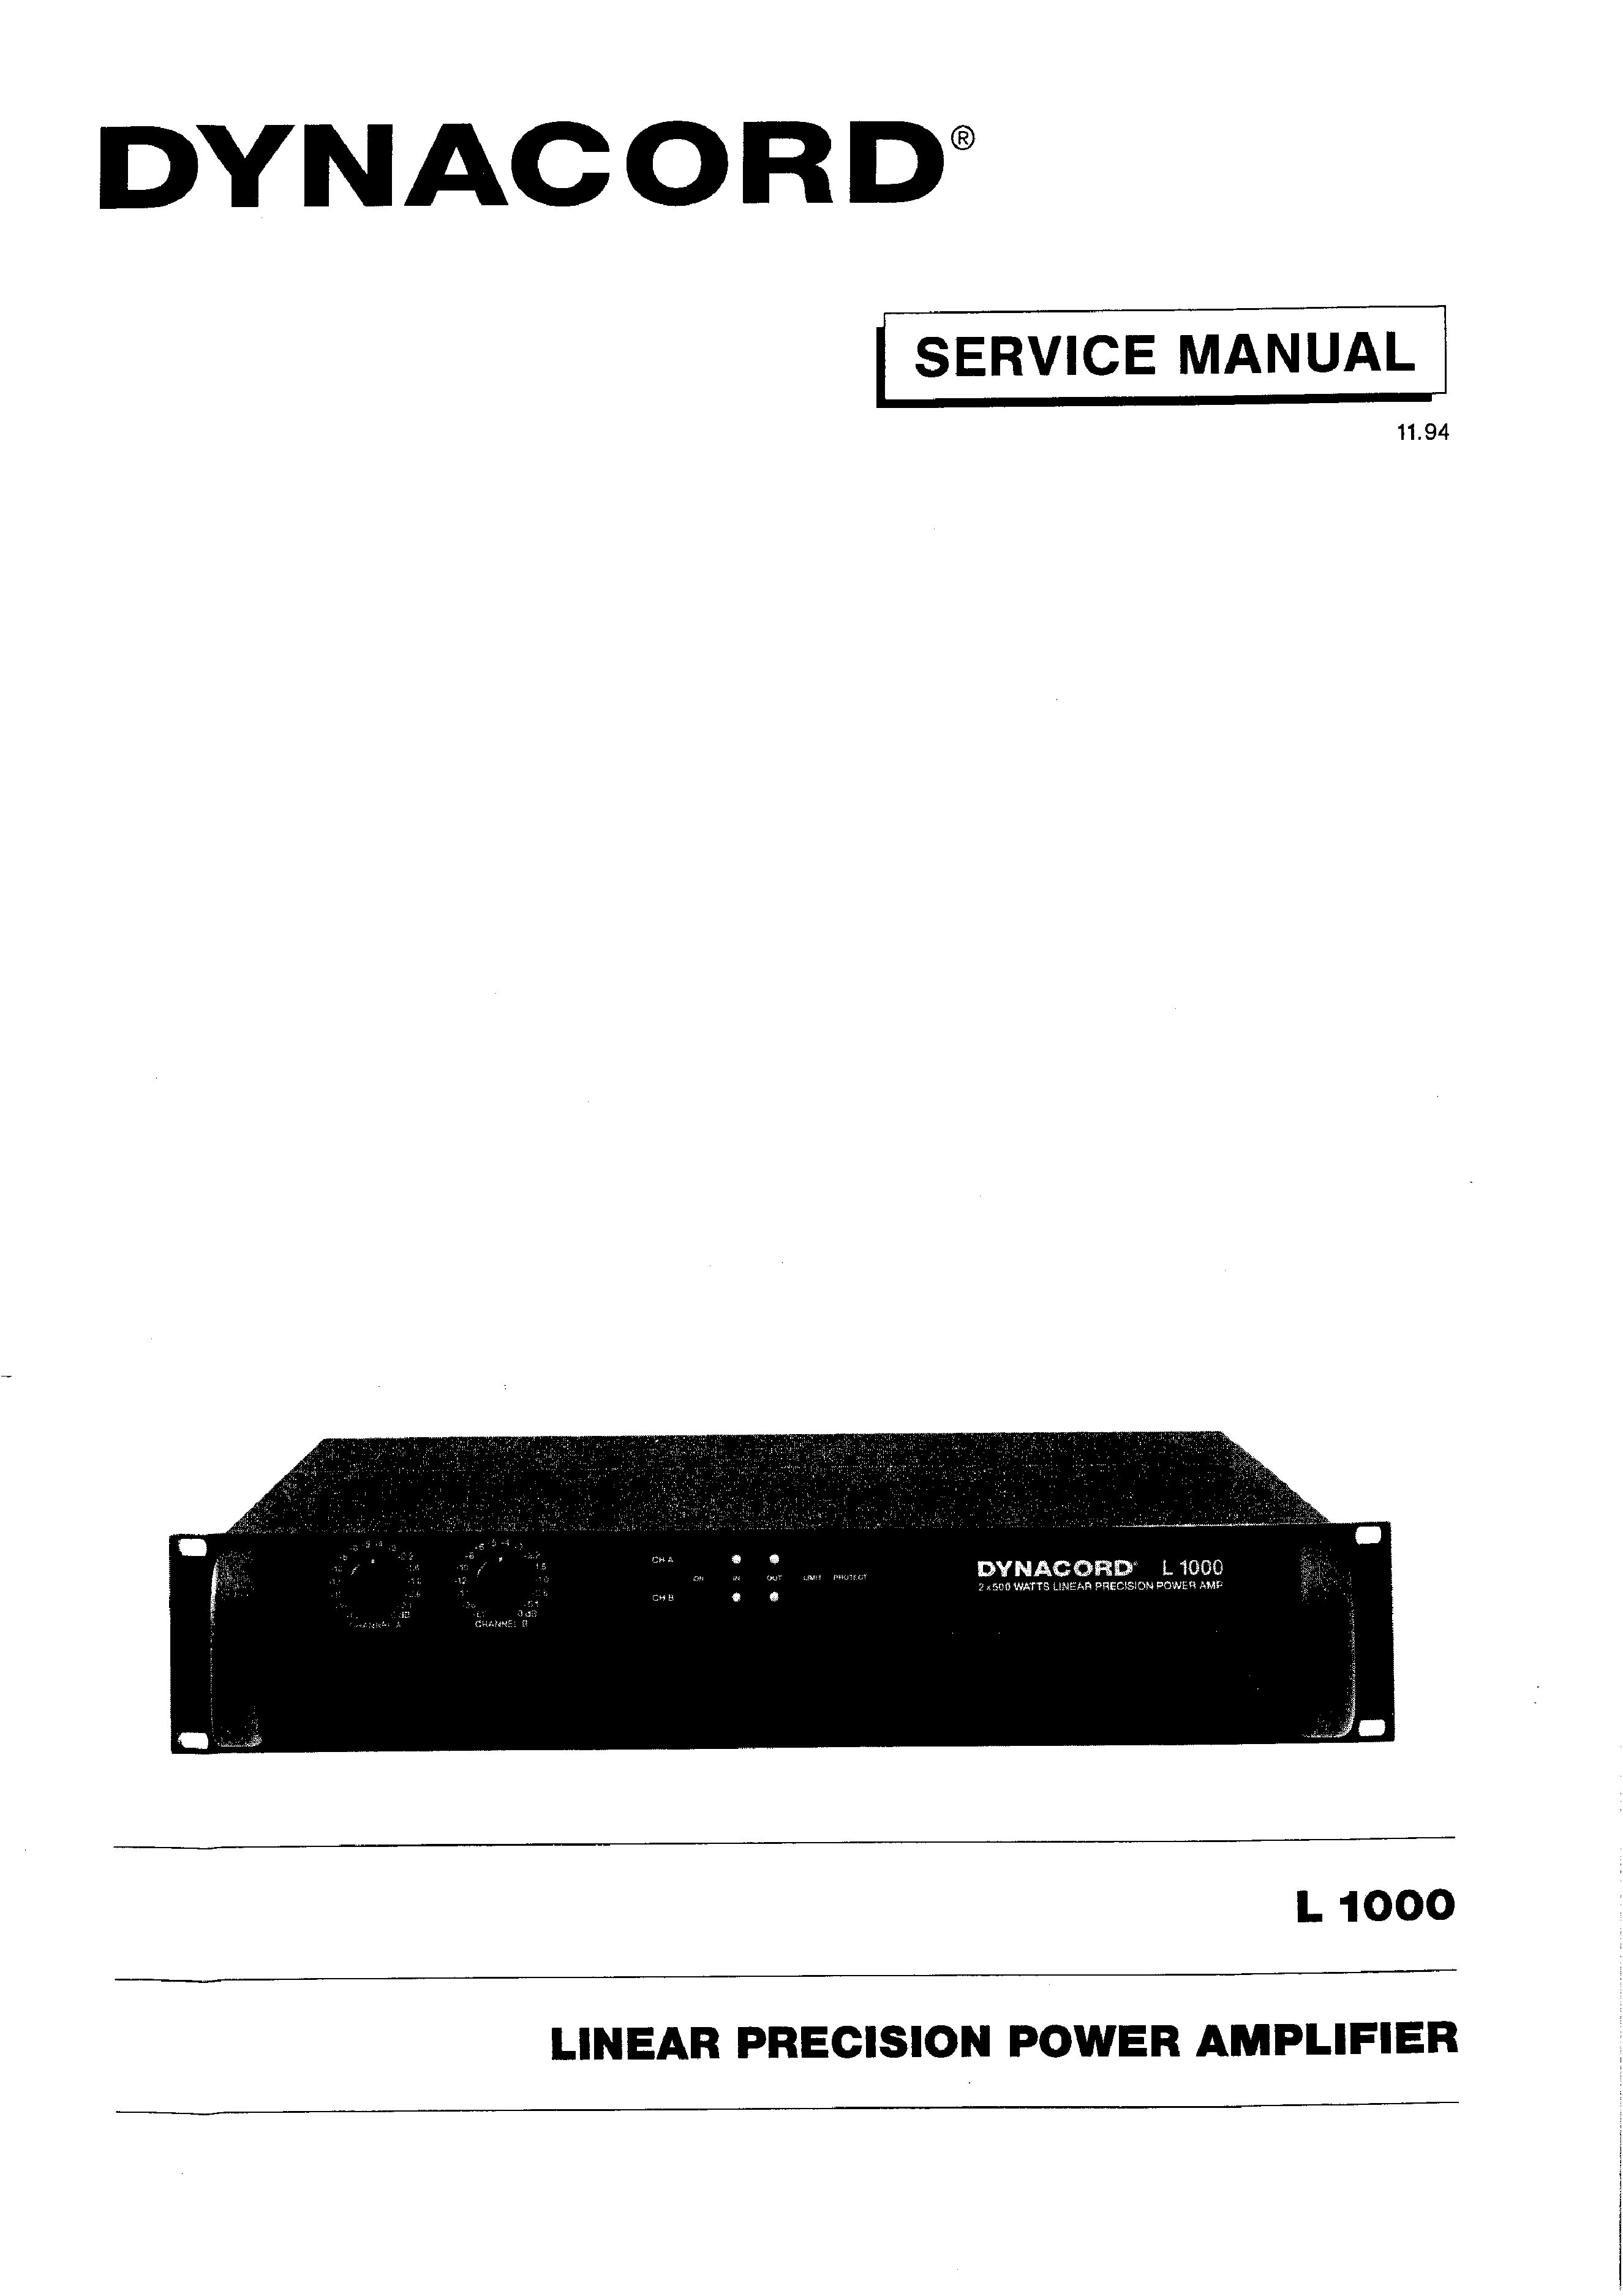 Dynacord service manual